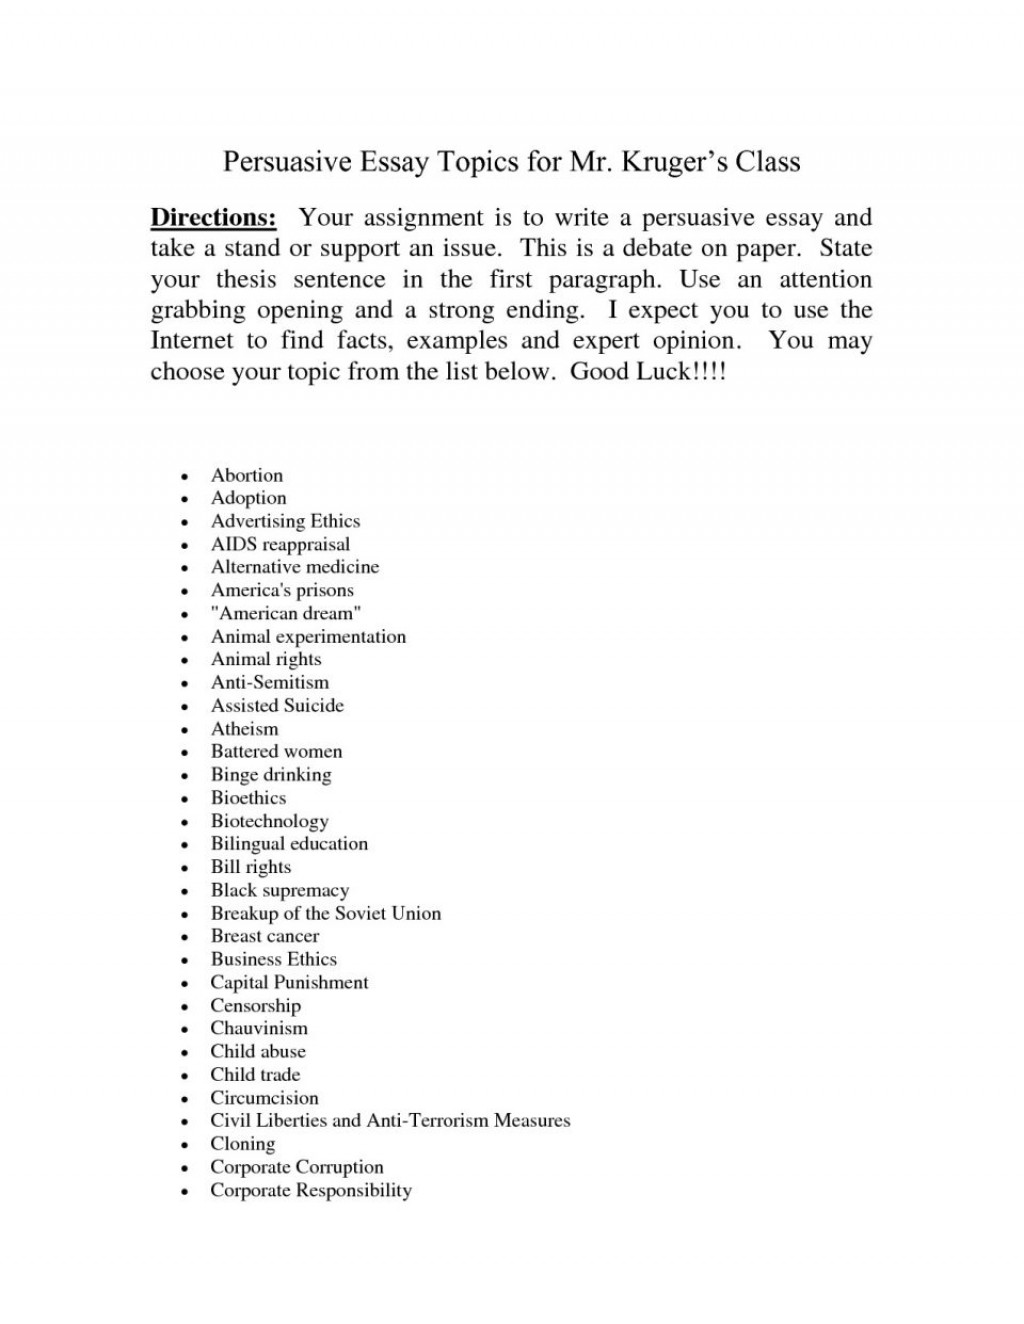 008 Topic For Essay Barca Fontanacountryinn Within Good Persuasive Narrative Topics To Write Abo Easy About Personal Descriptivearch Paper Informative Synthesis College 960x1242 Striking Research Business On Ethics Law Class Large